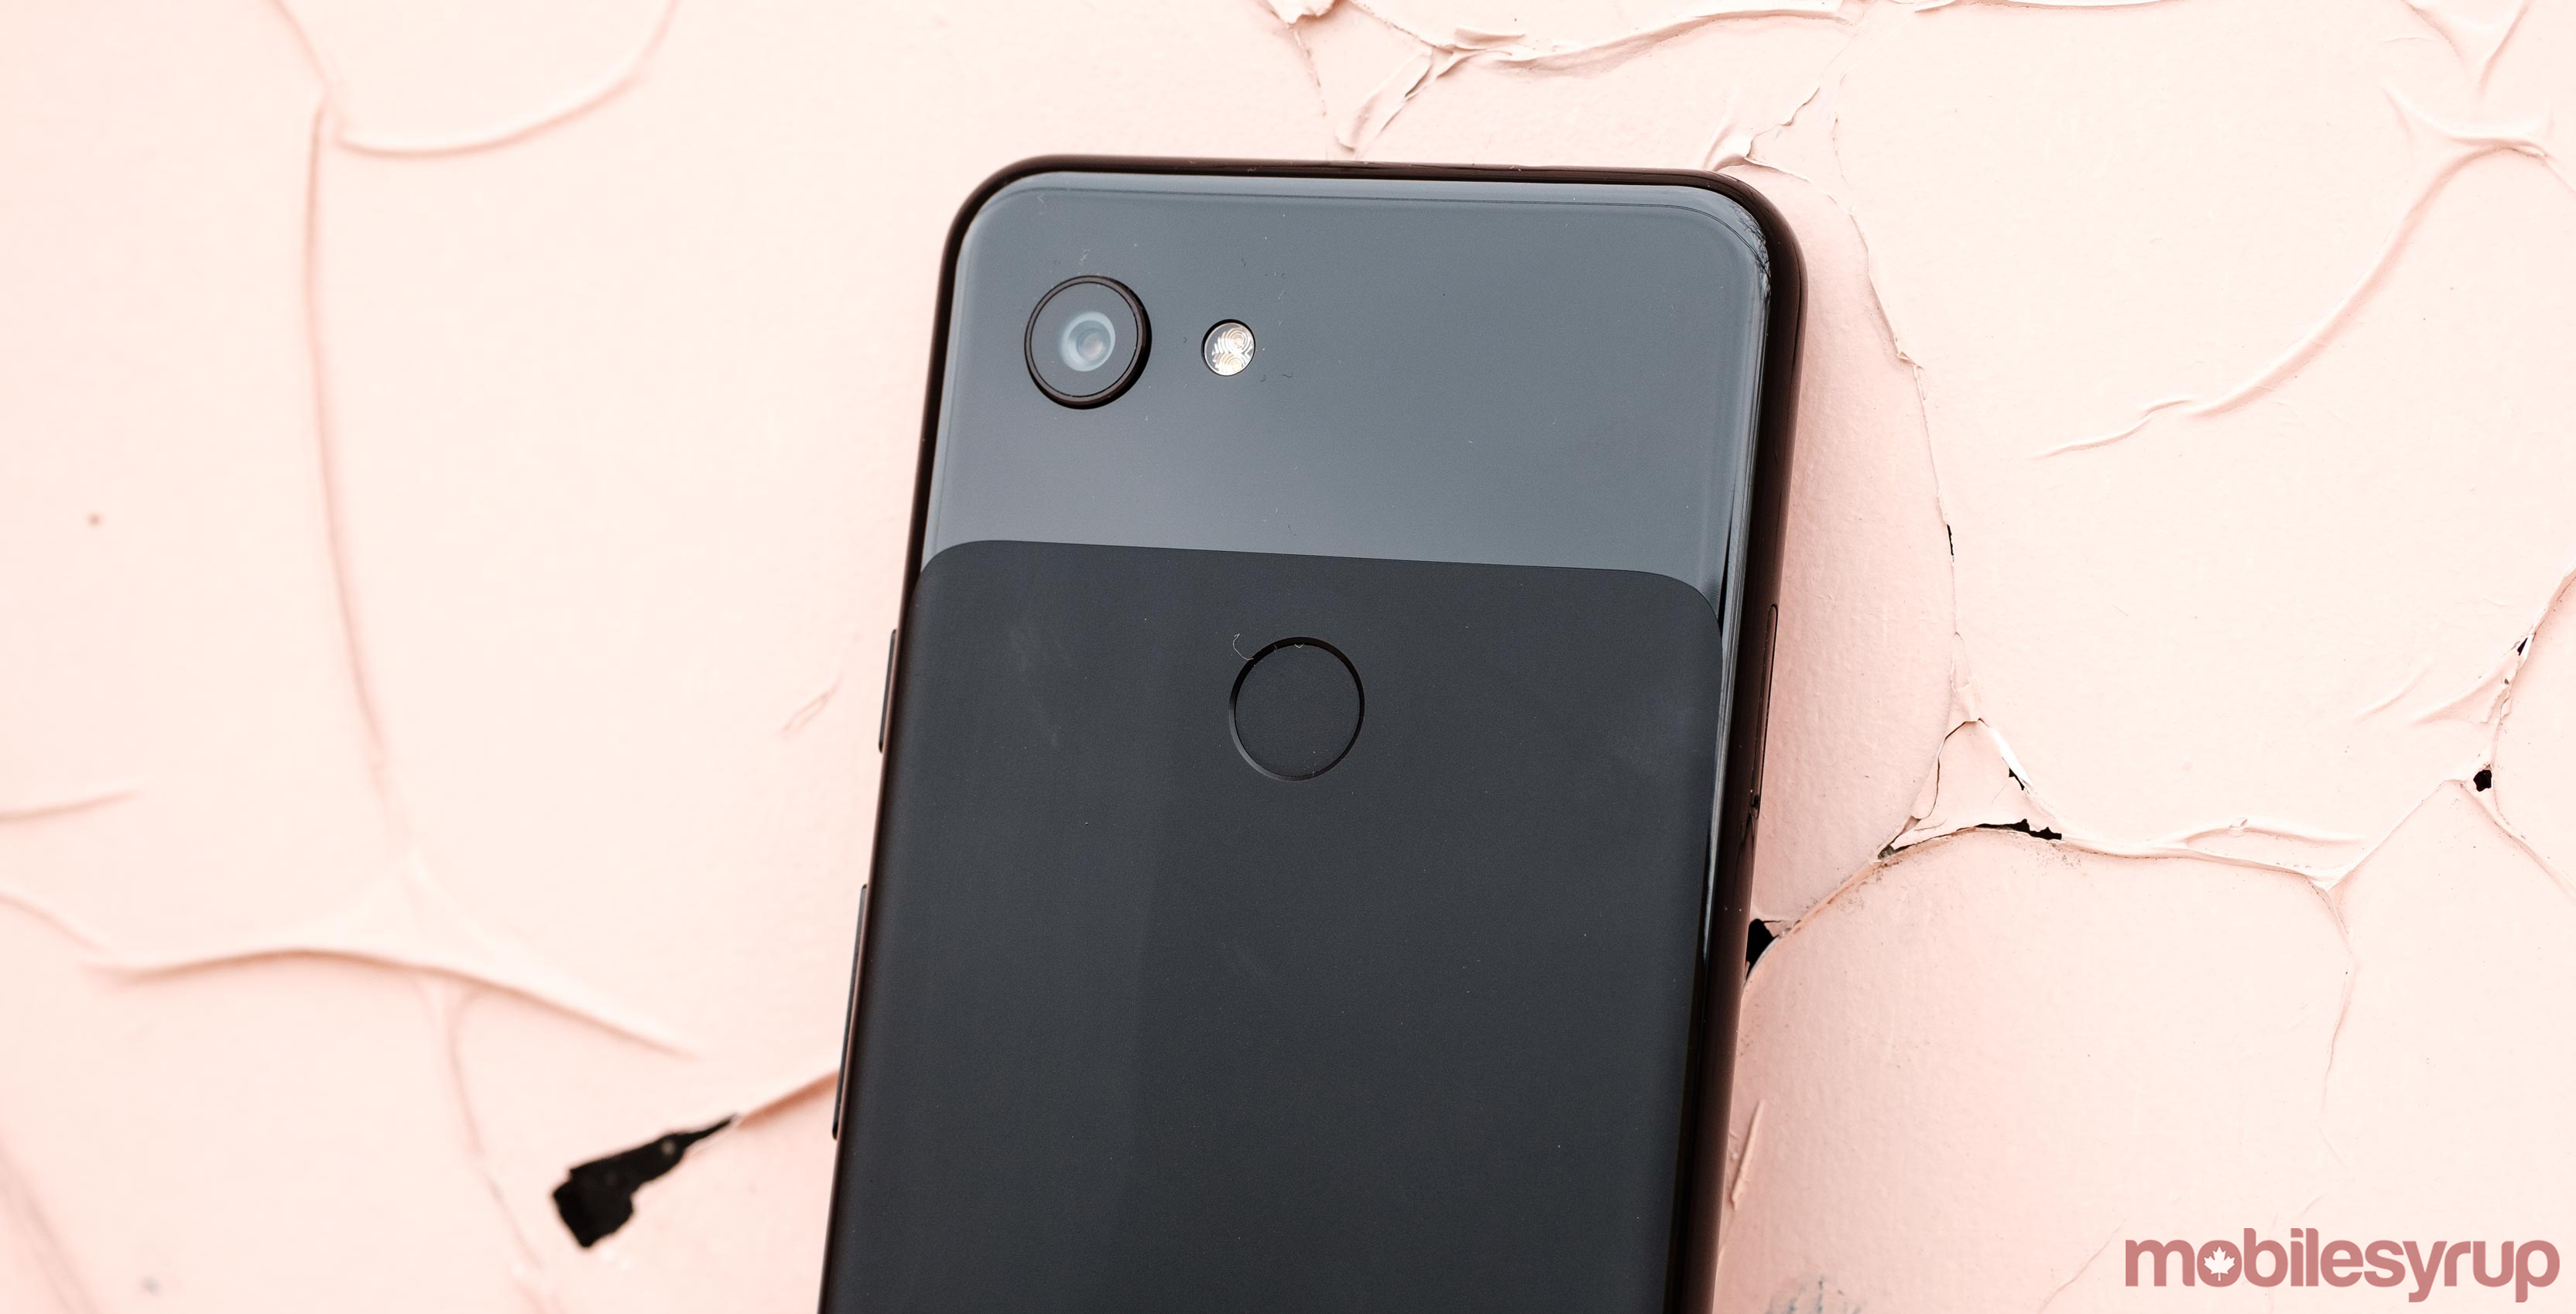 The HTC team Google acquired built the Pixel 3a